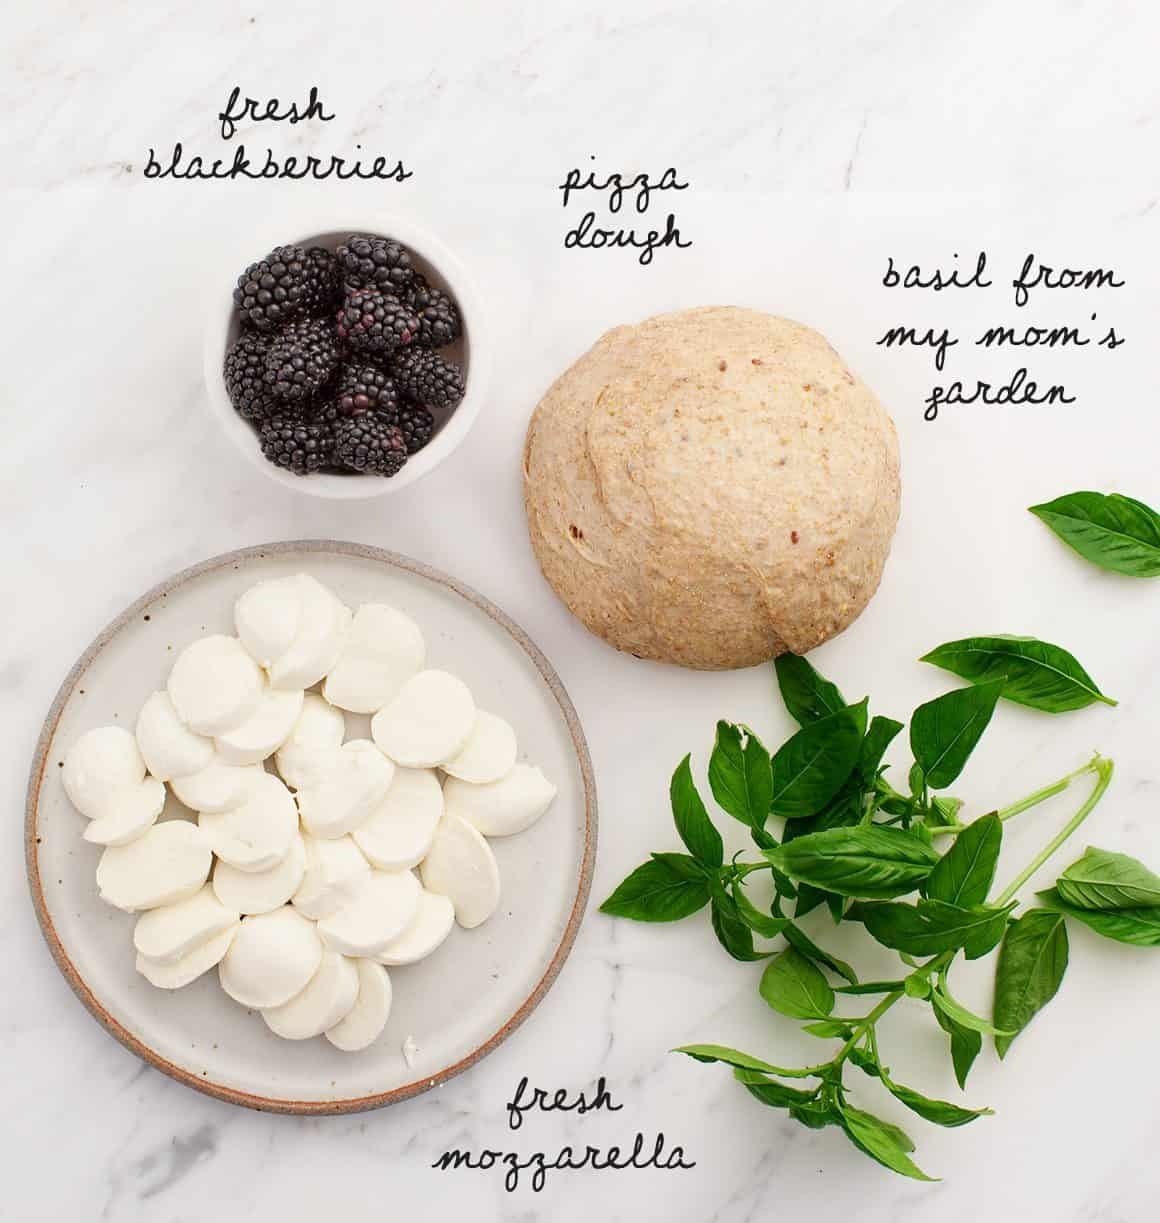 Basil Pizza recipe ingredients